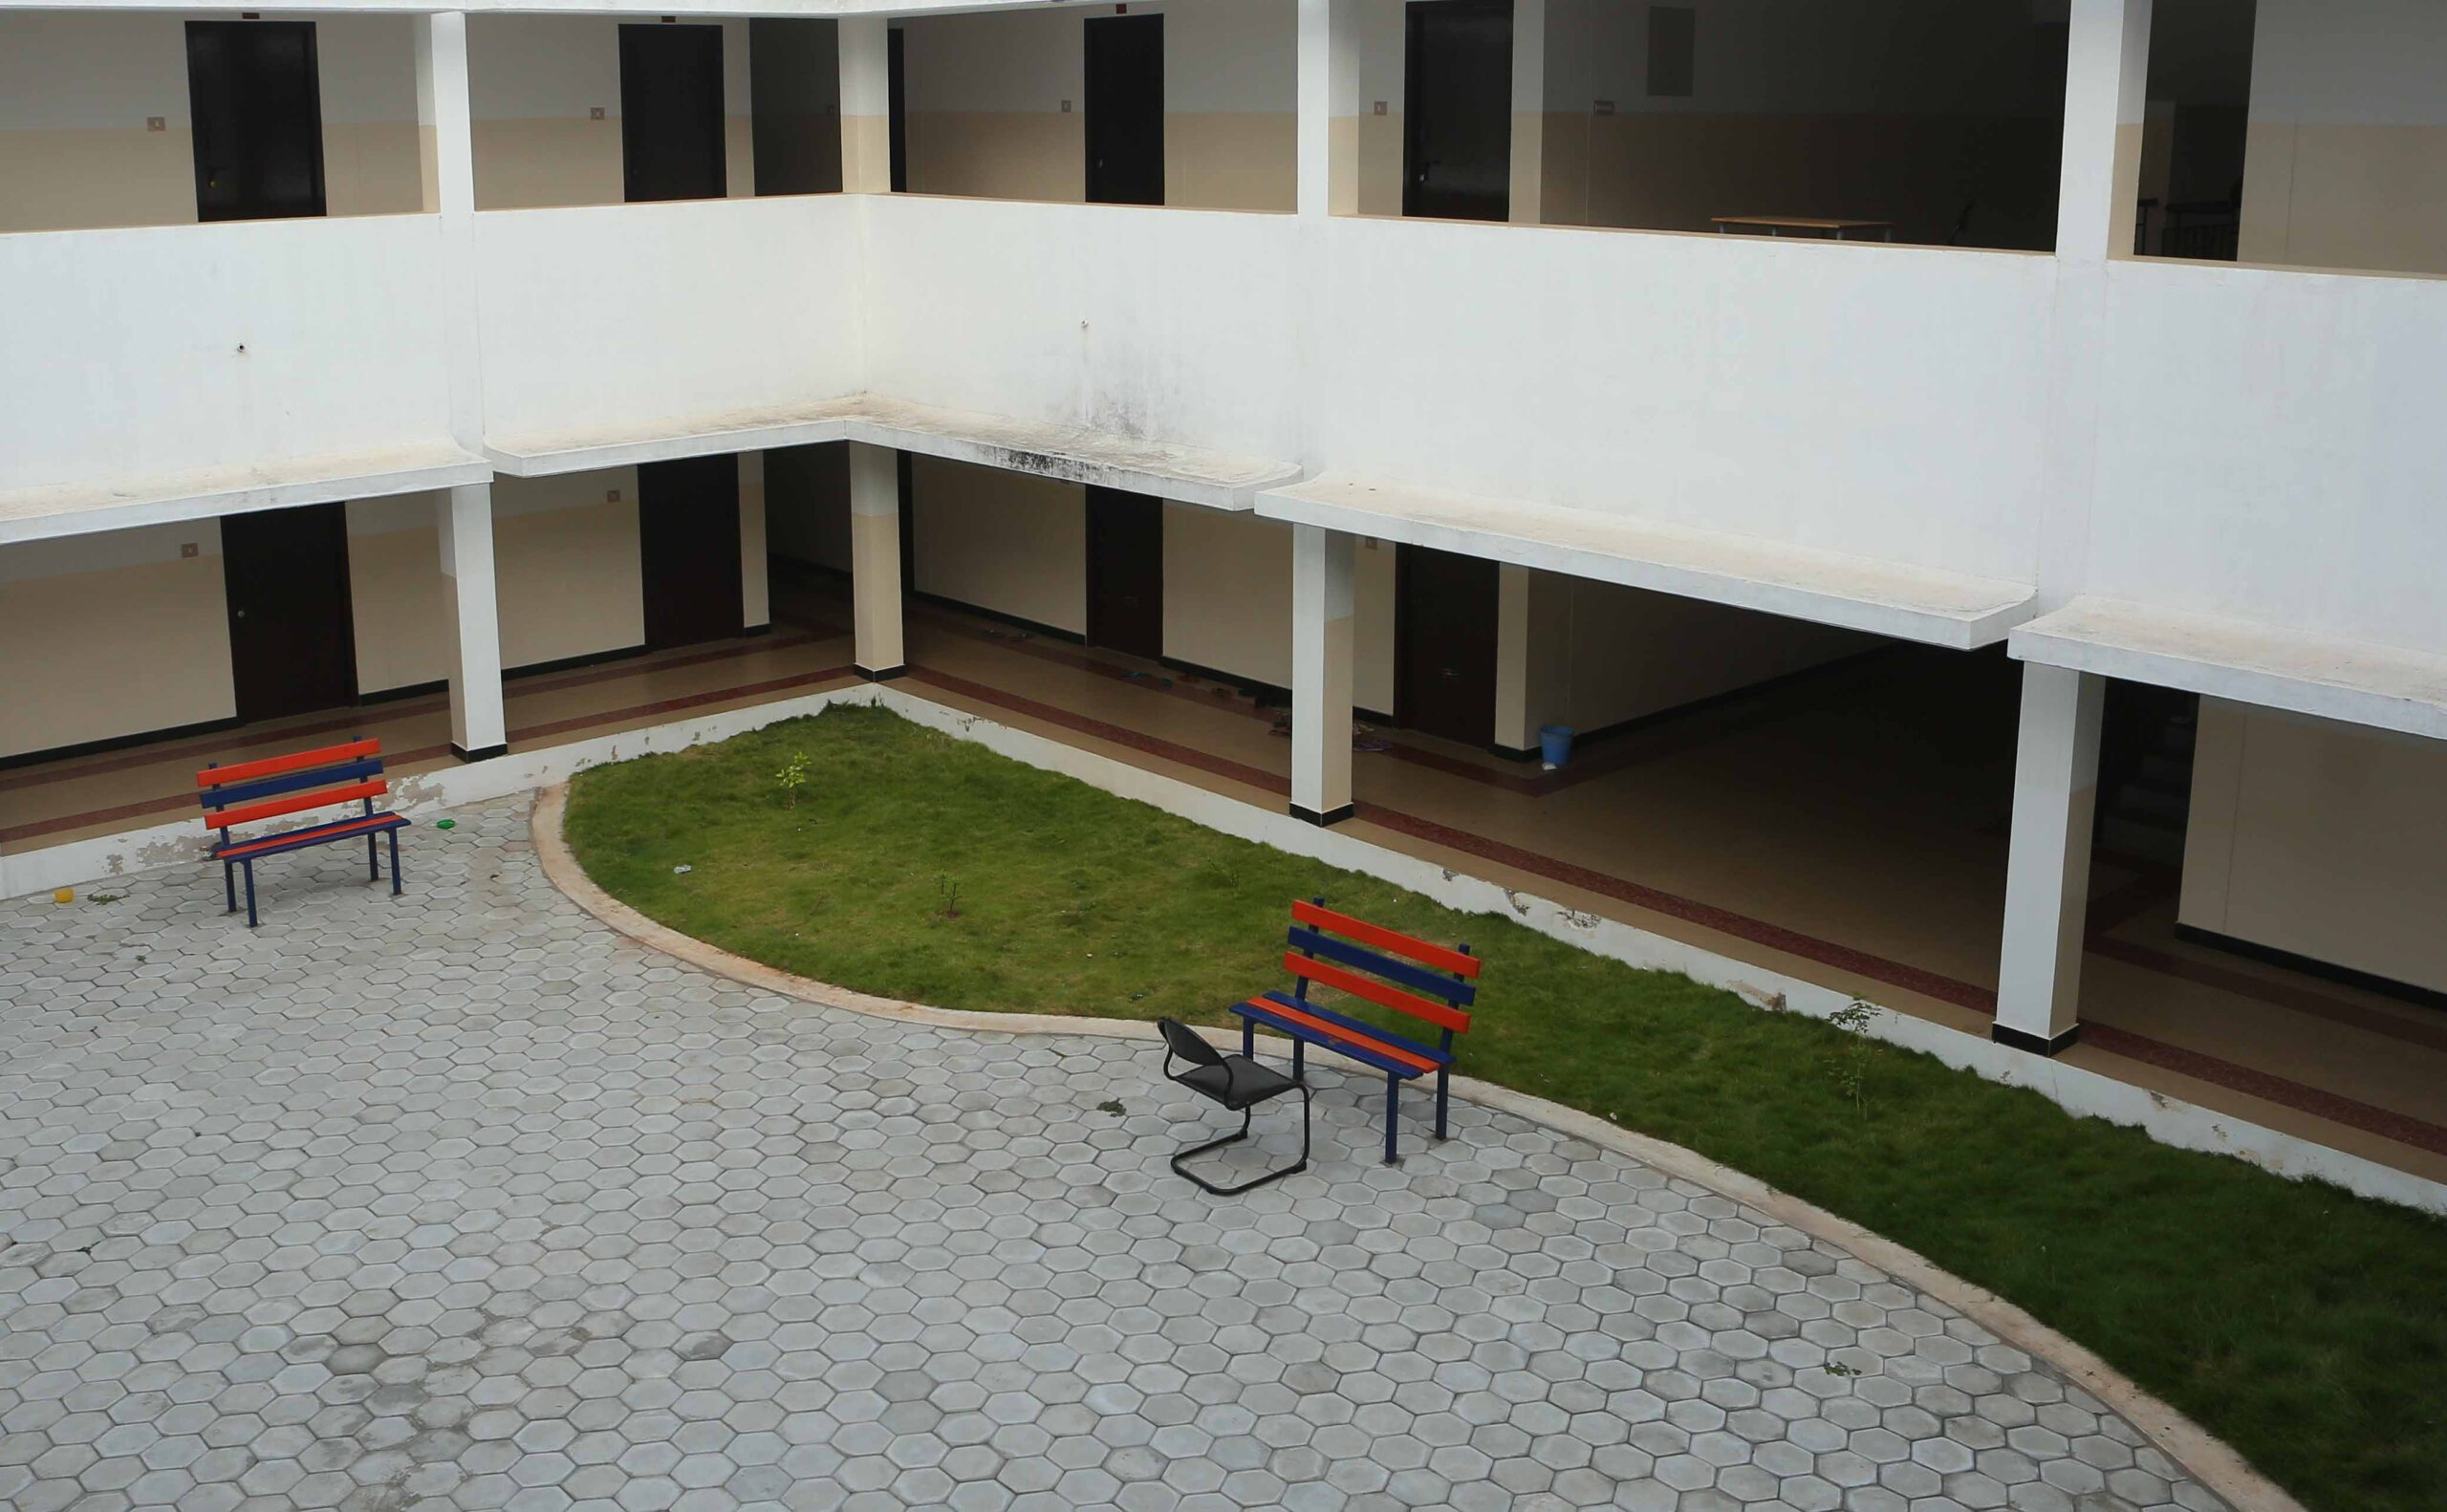 Coc Hostel (College of Commerce)